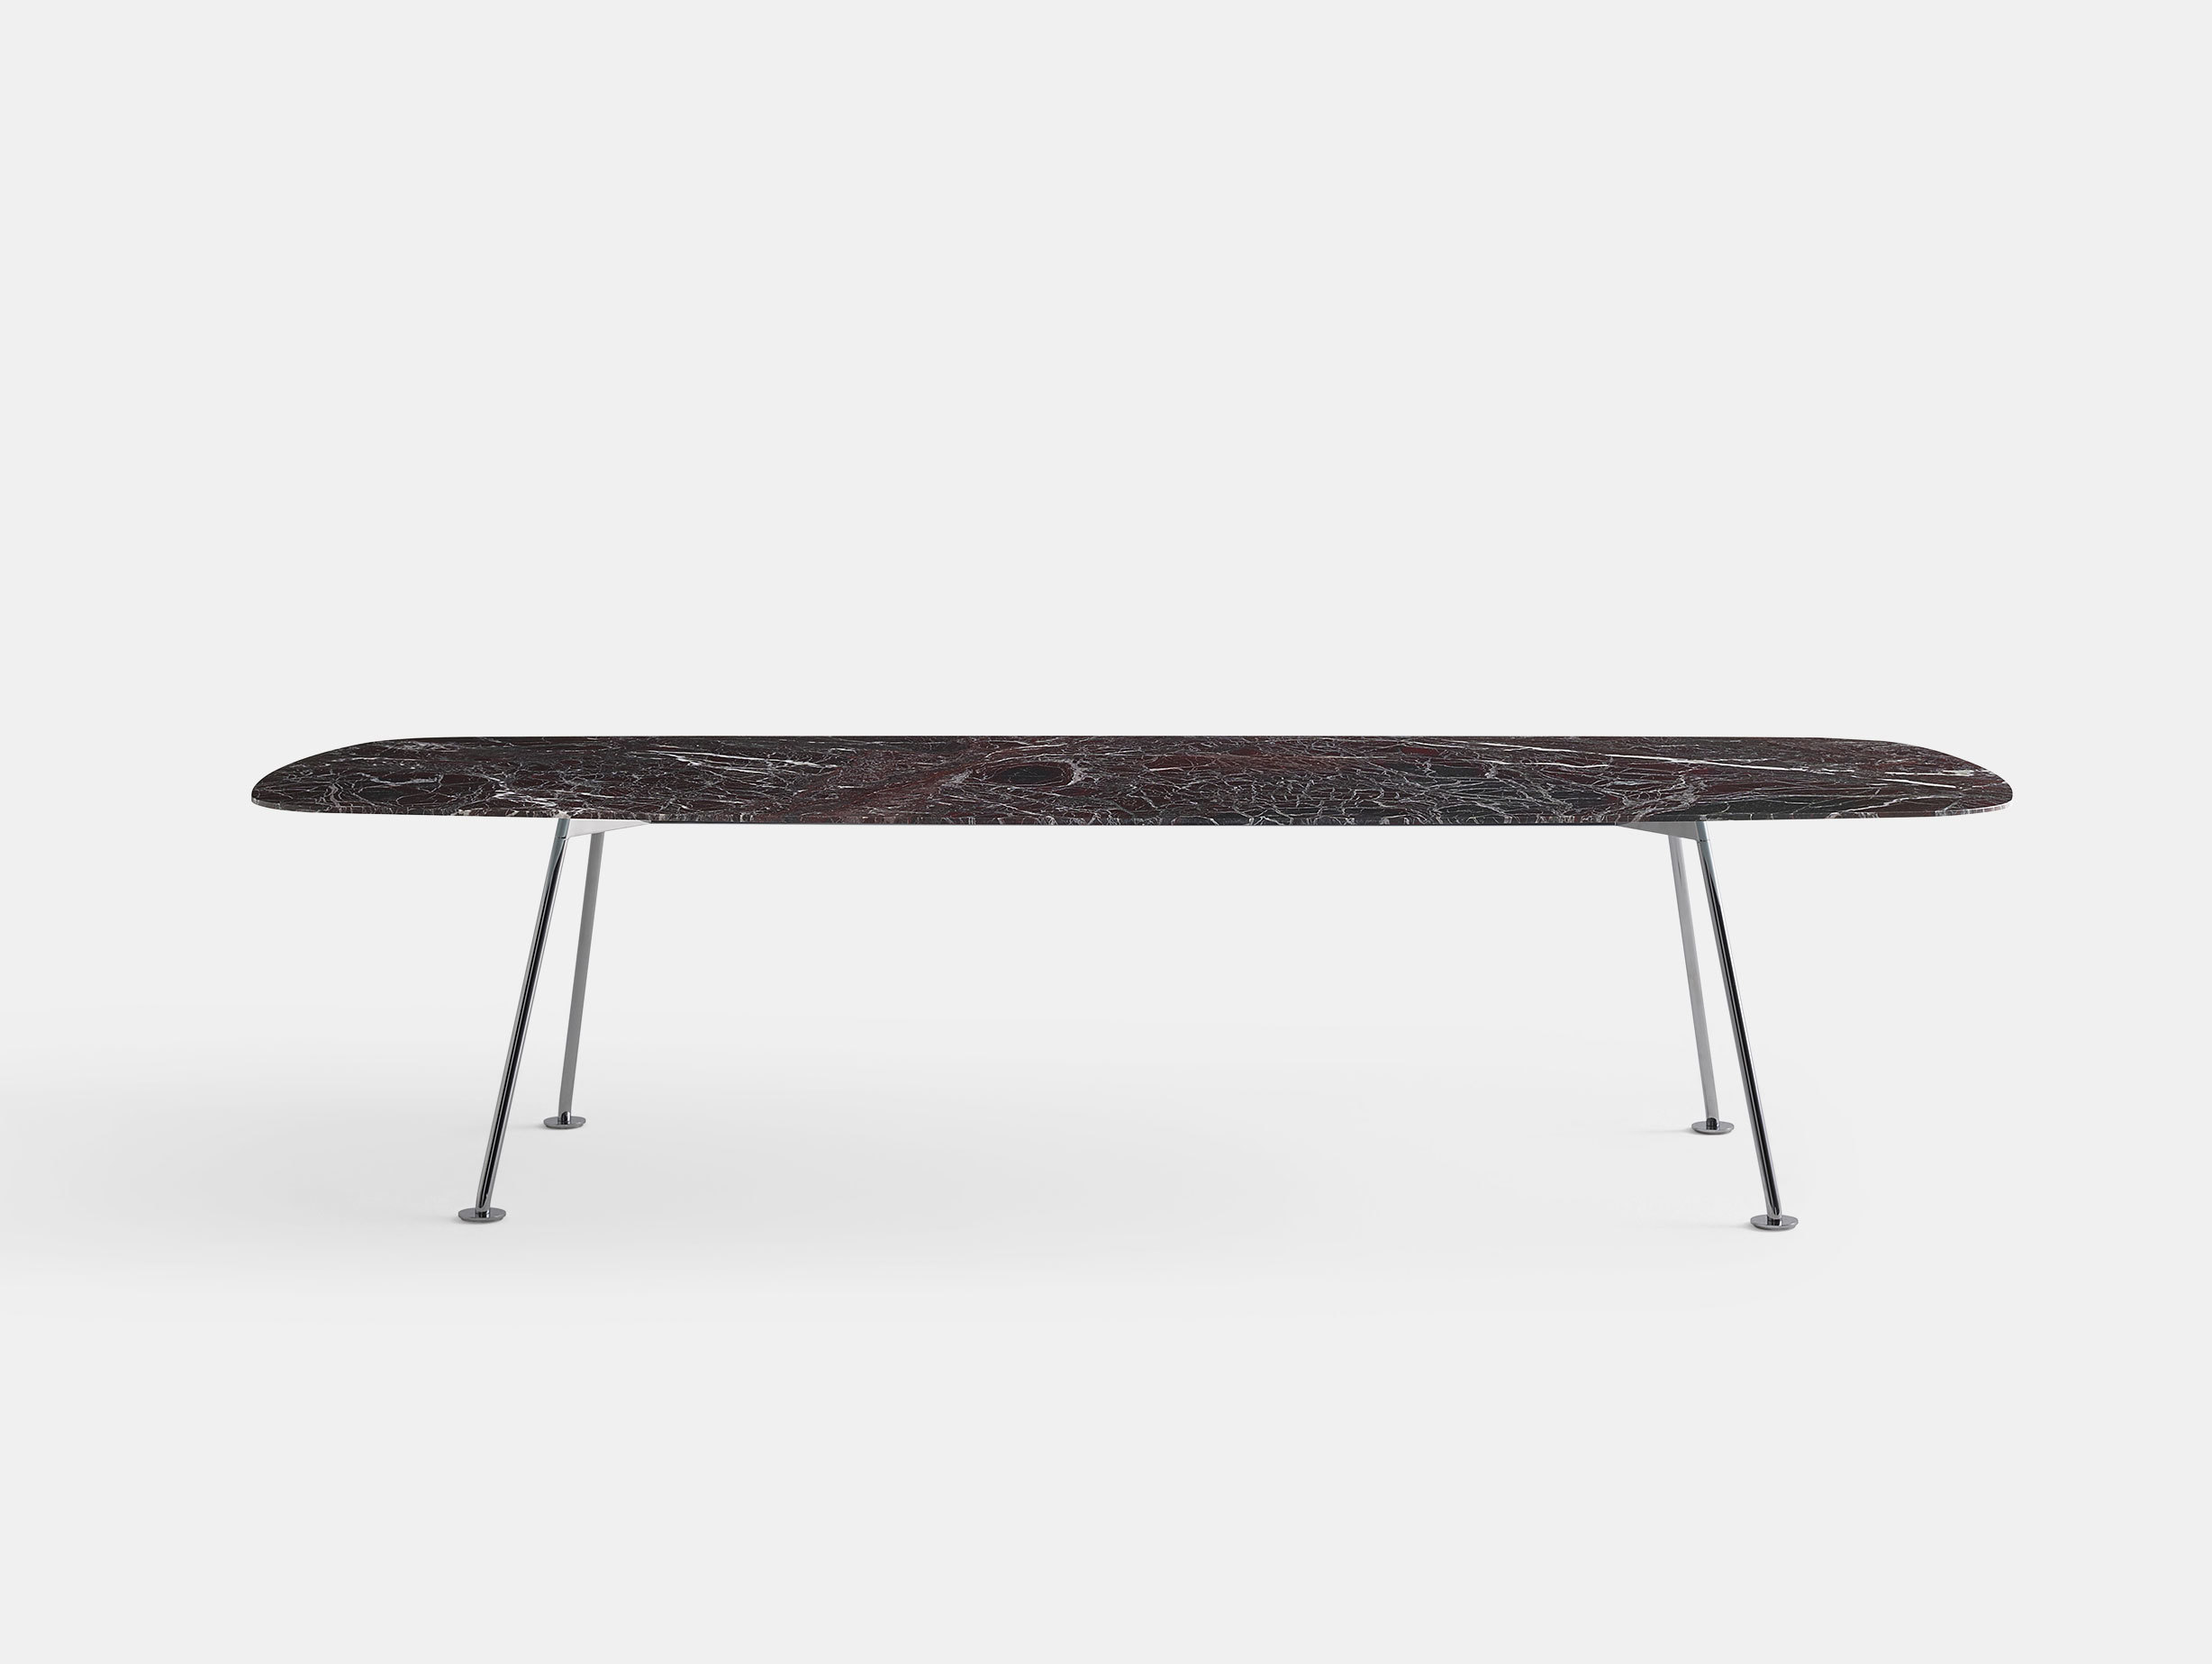 Knoll Grasshopper Table Piero Lissoni